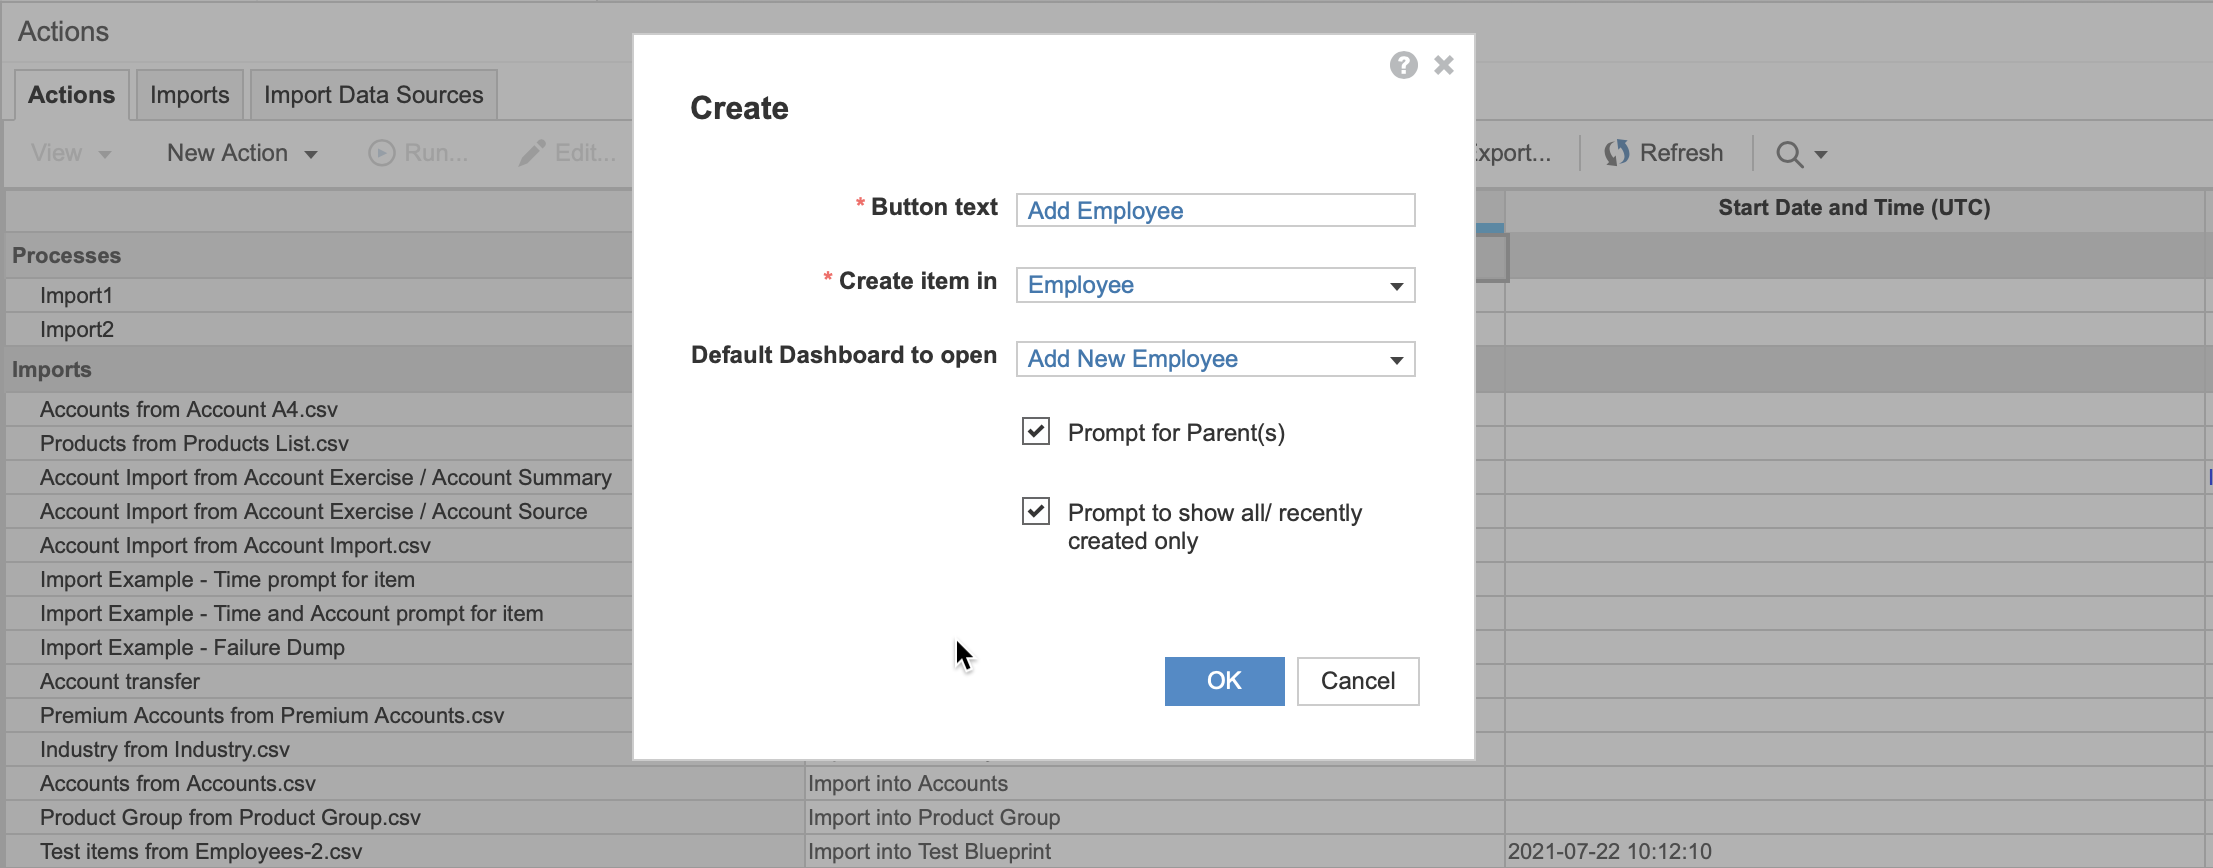 The Actions pane with the Create dialog open. The Button text is Add Employee, Employee is selected in the Create item in dropdown, Add New Employee is selected in Default Dashboard to open, and the checkboxes are selected for Prompt for Parents(s) and Prompt to show all/recently created only.